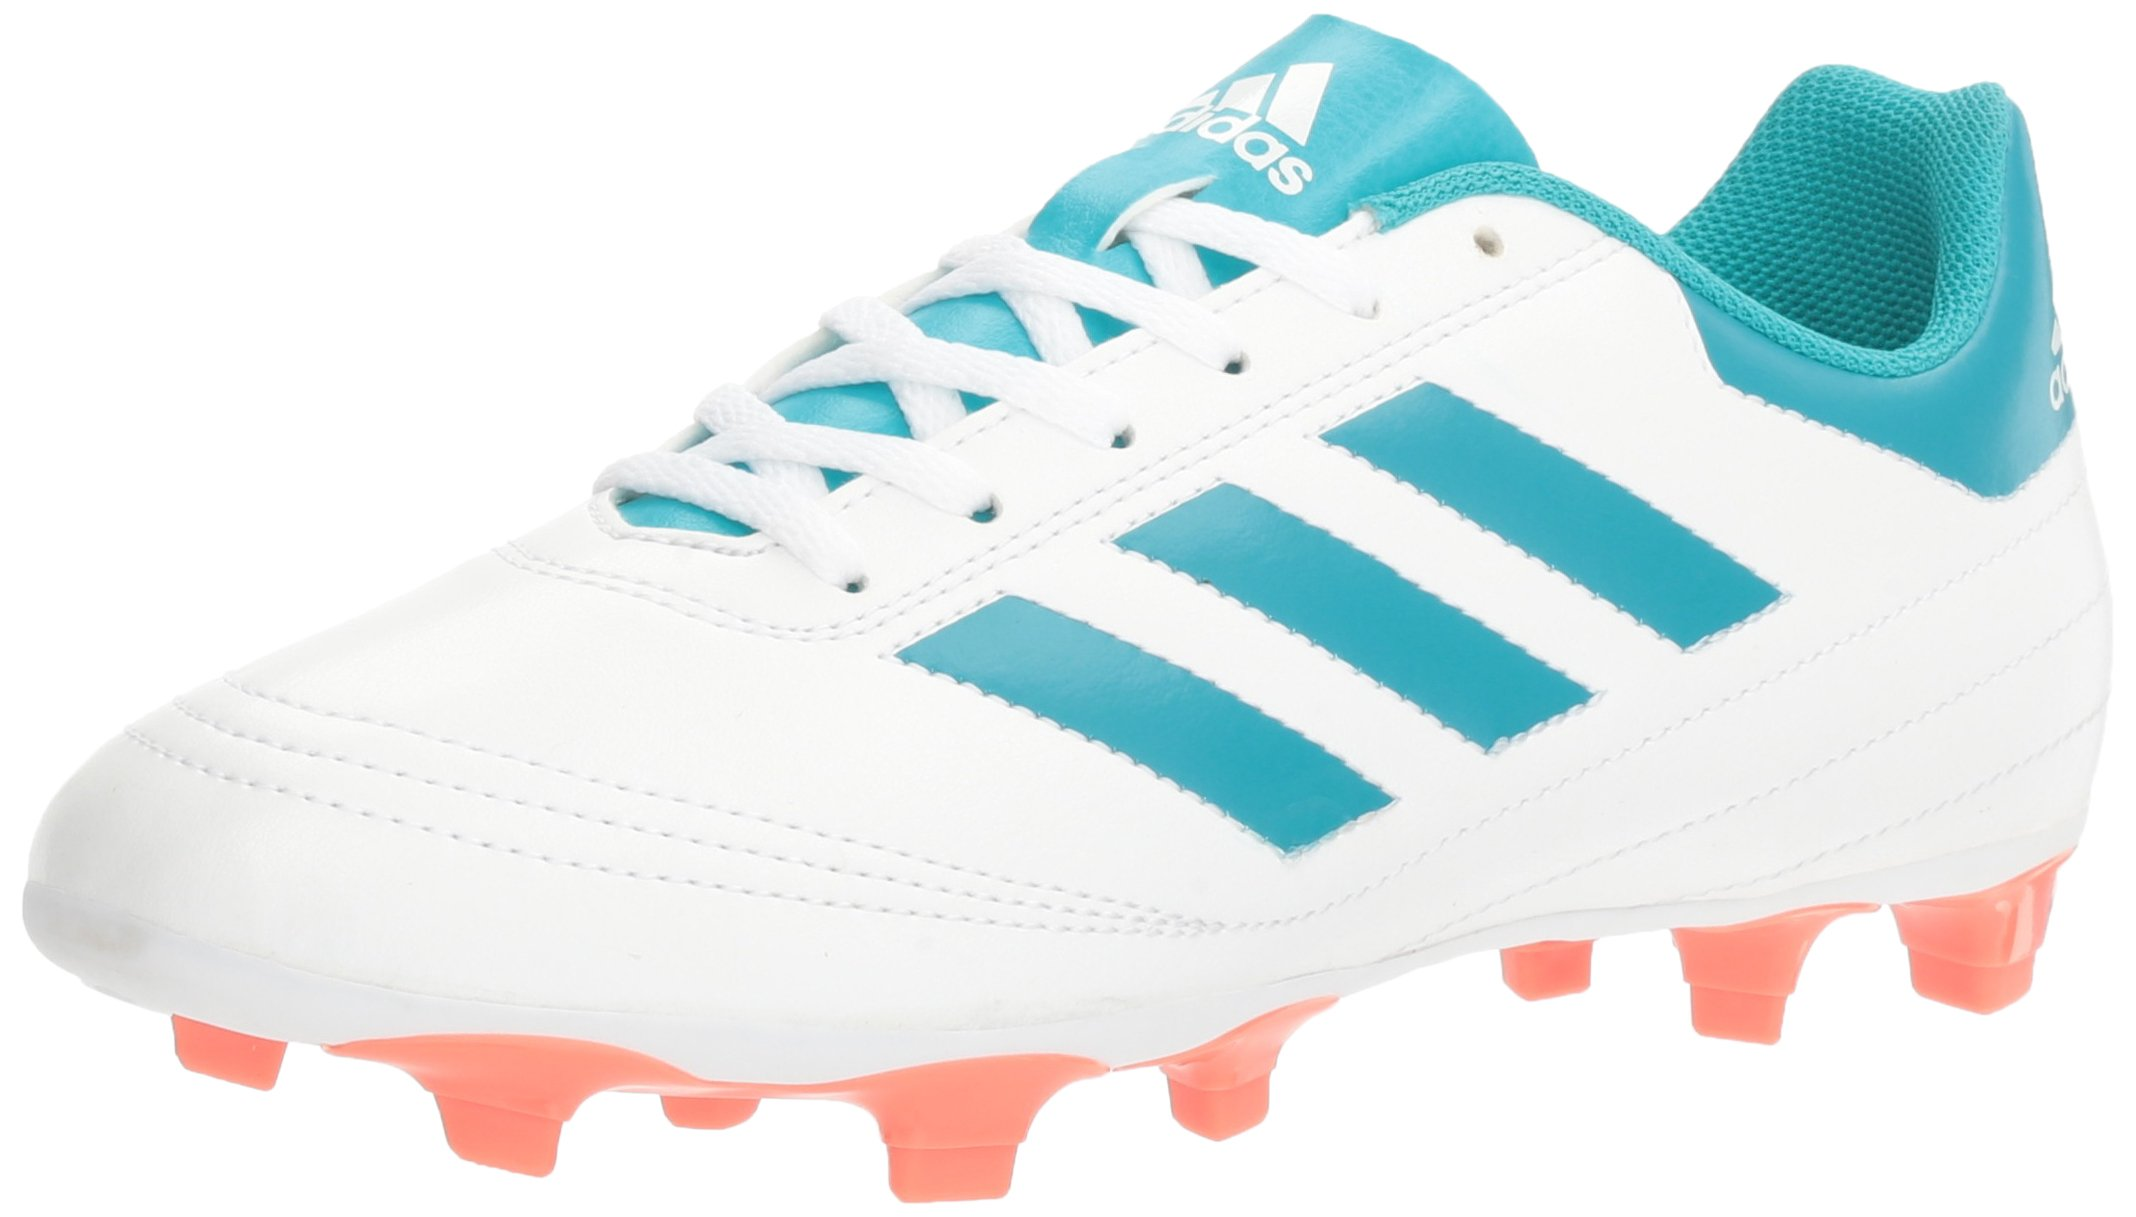 adidas Performance Women's Goletto VI FG W Soccer Shoe, White/Energy Blue Easy Coral S, 9 M US